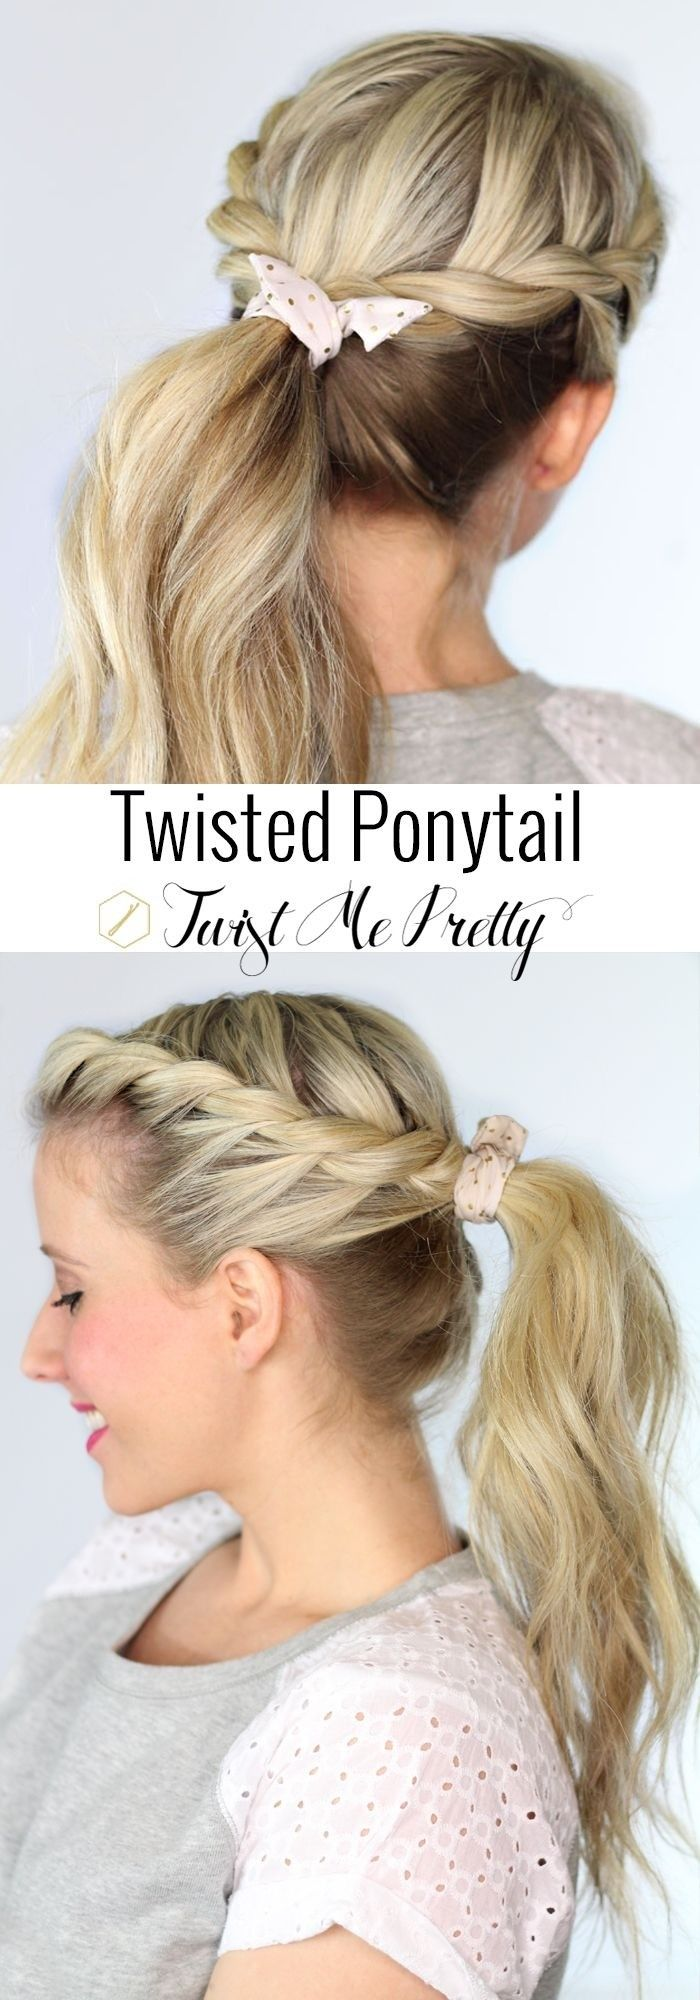 Braided Ponytail Hairstyles on Pinterest | Braided ...